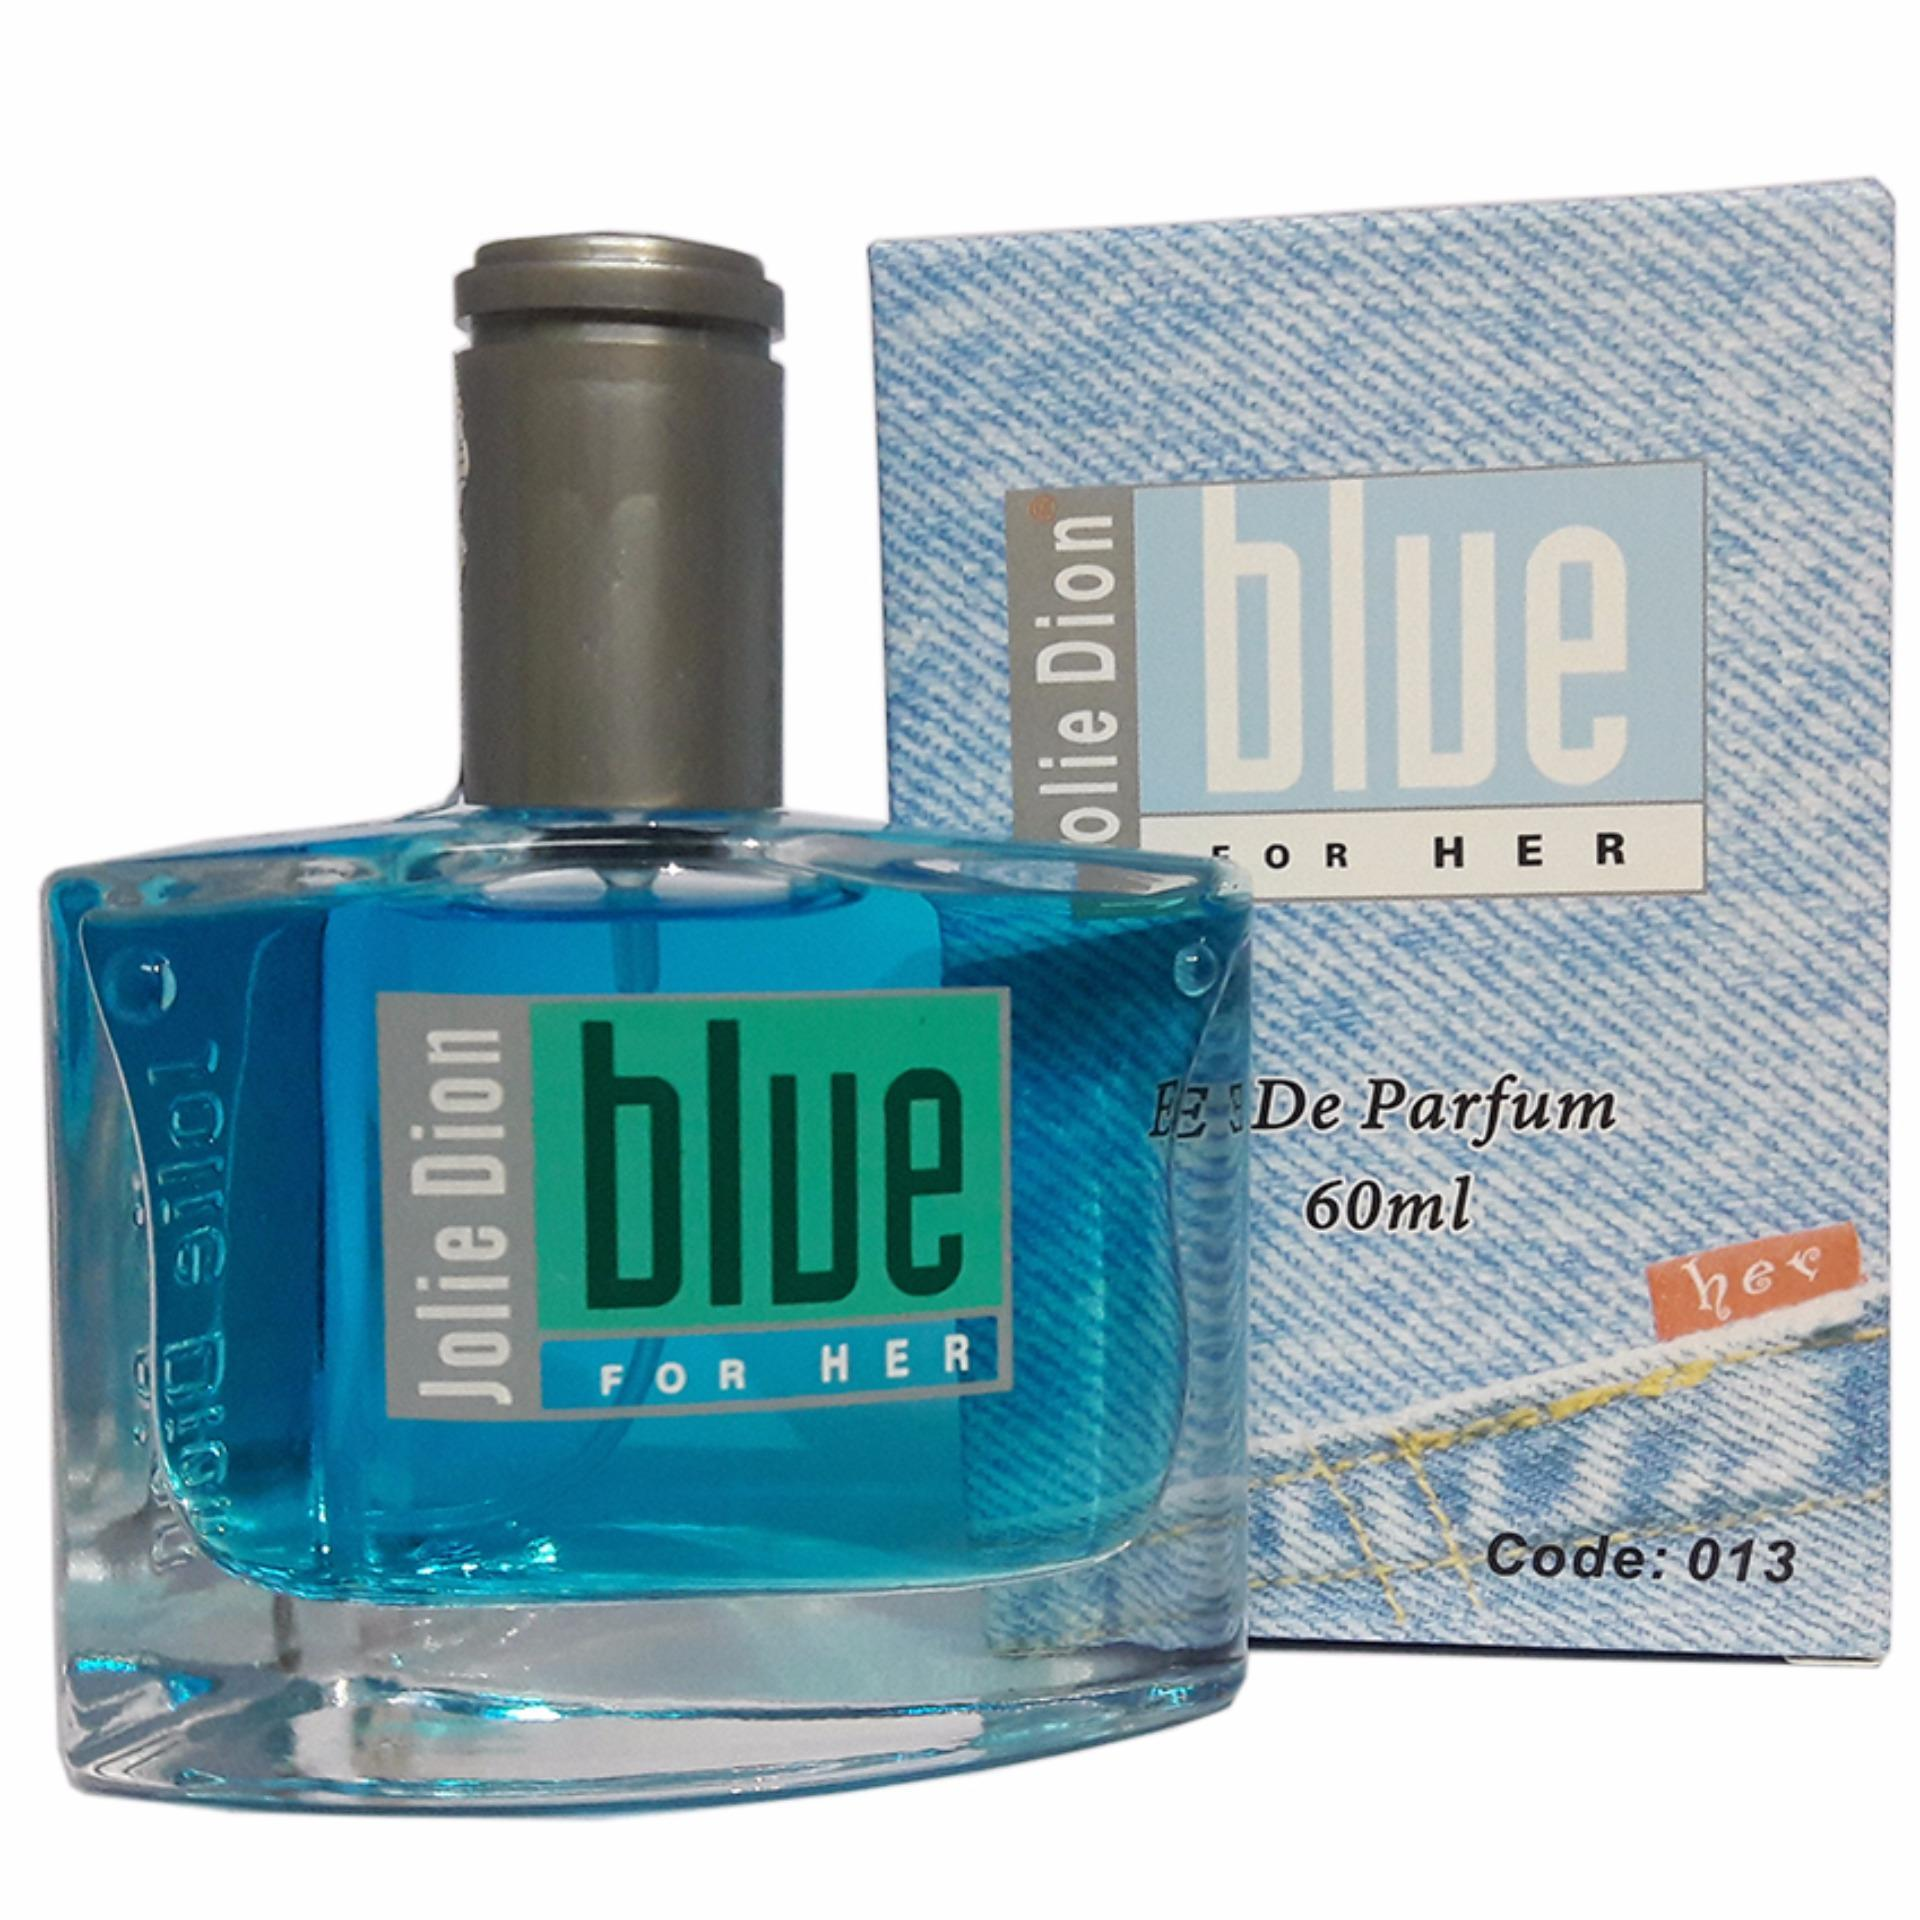 Nước hoa nam Avon Blue For Her 50ml